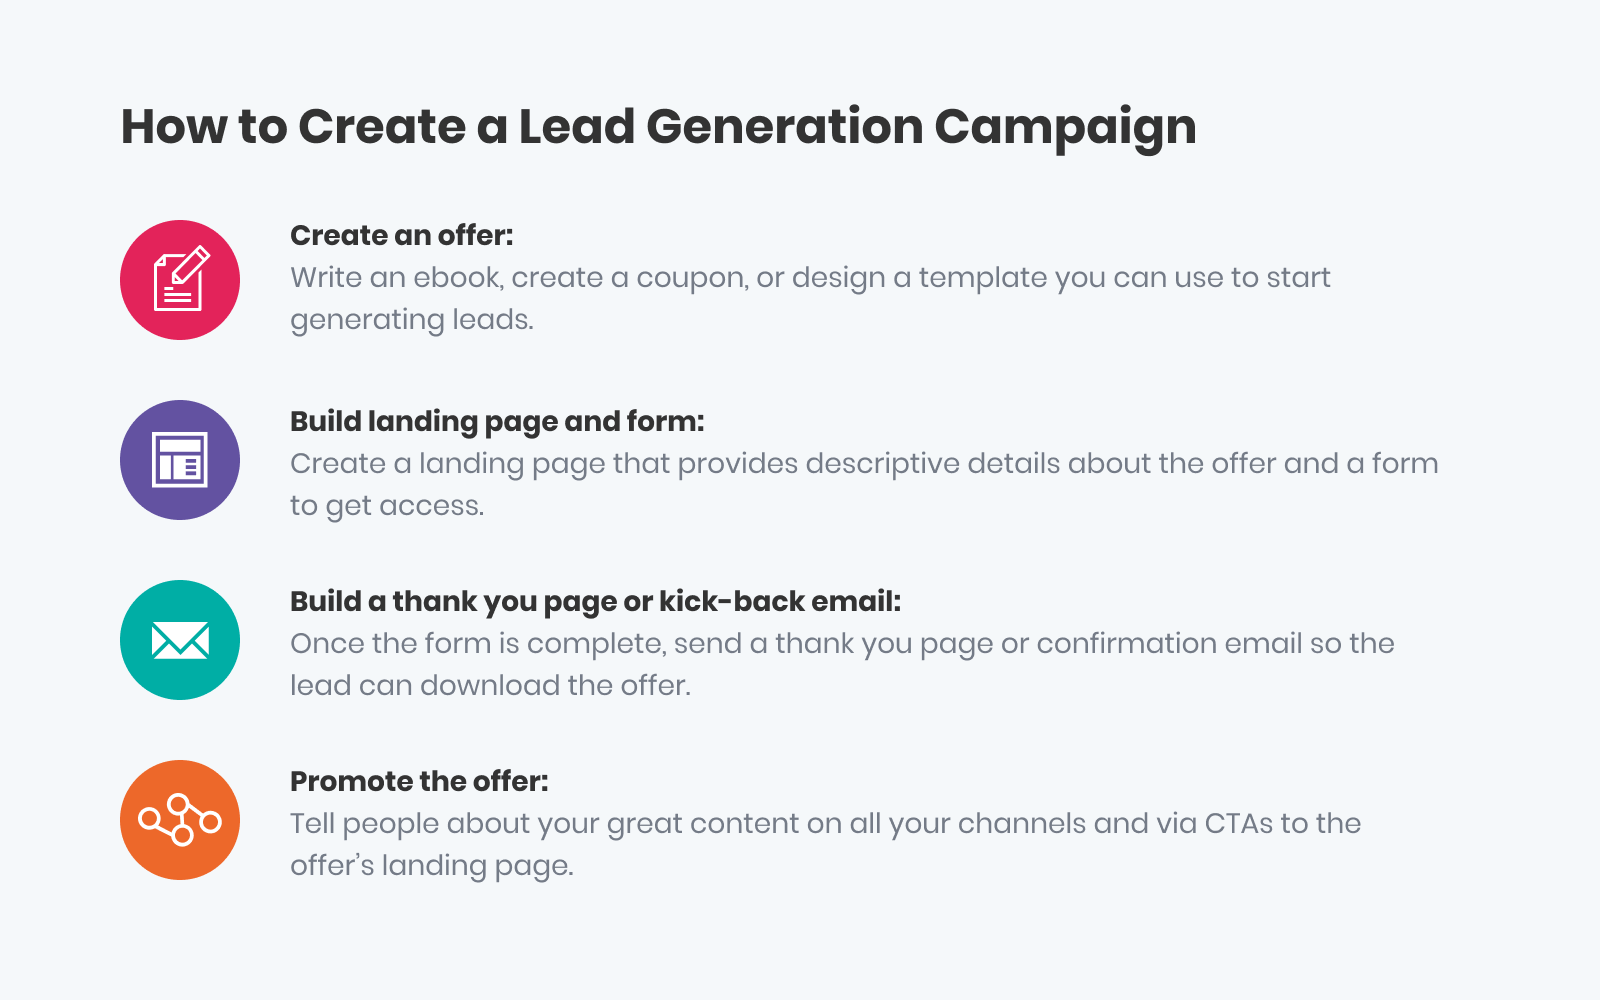 how to create a lead generation campaign